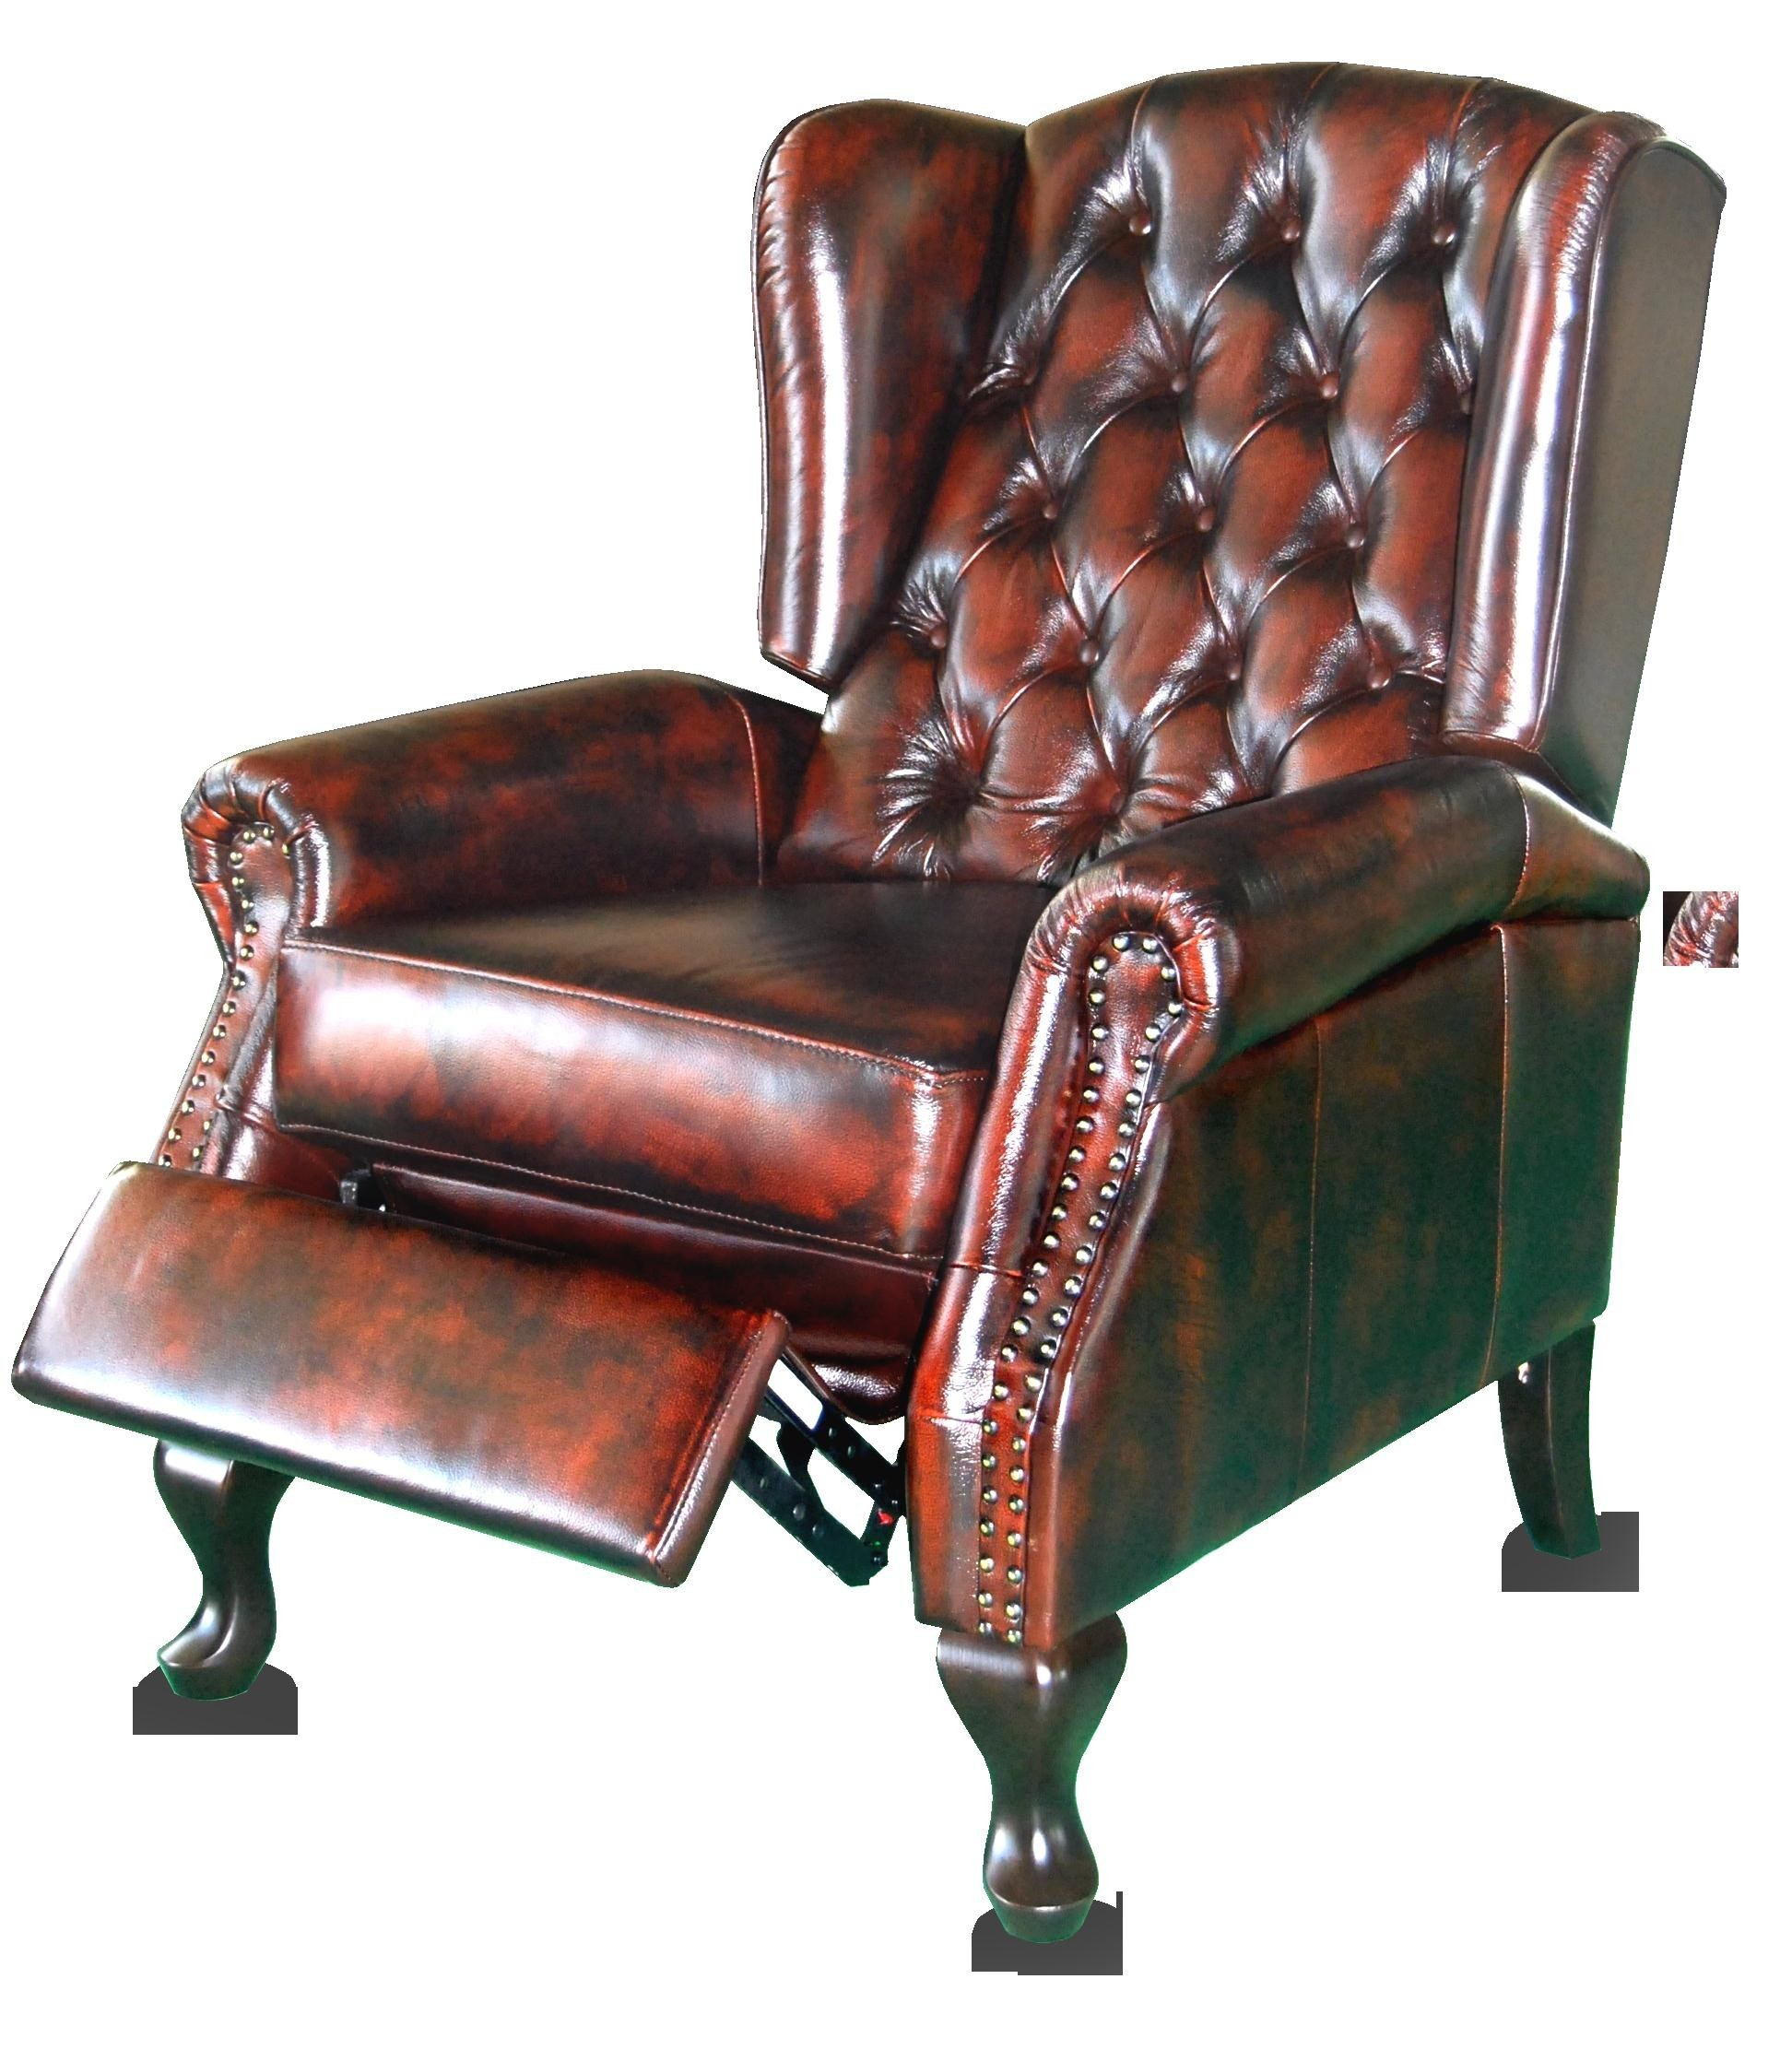 Picture of: Chesterfield Lounges Chesterfield Sofas Wingback Chairs Wing Back Recliners Chesterfield Gallery Wing Chair Recliner C9025 Brisbane Sydney Melbourne